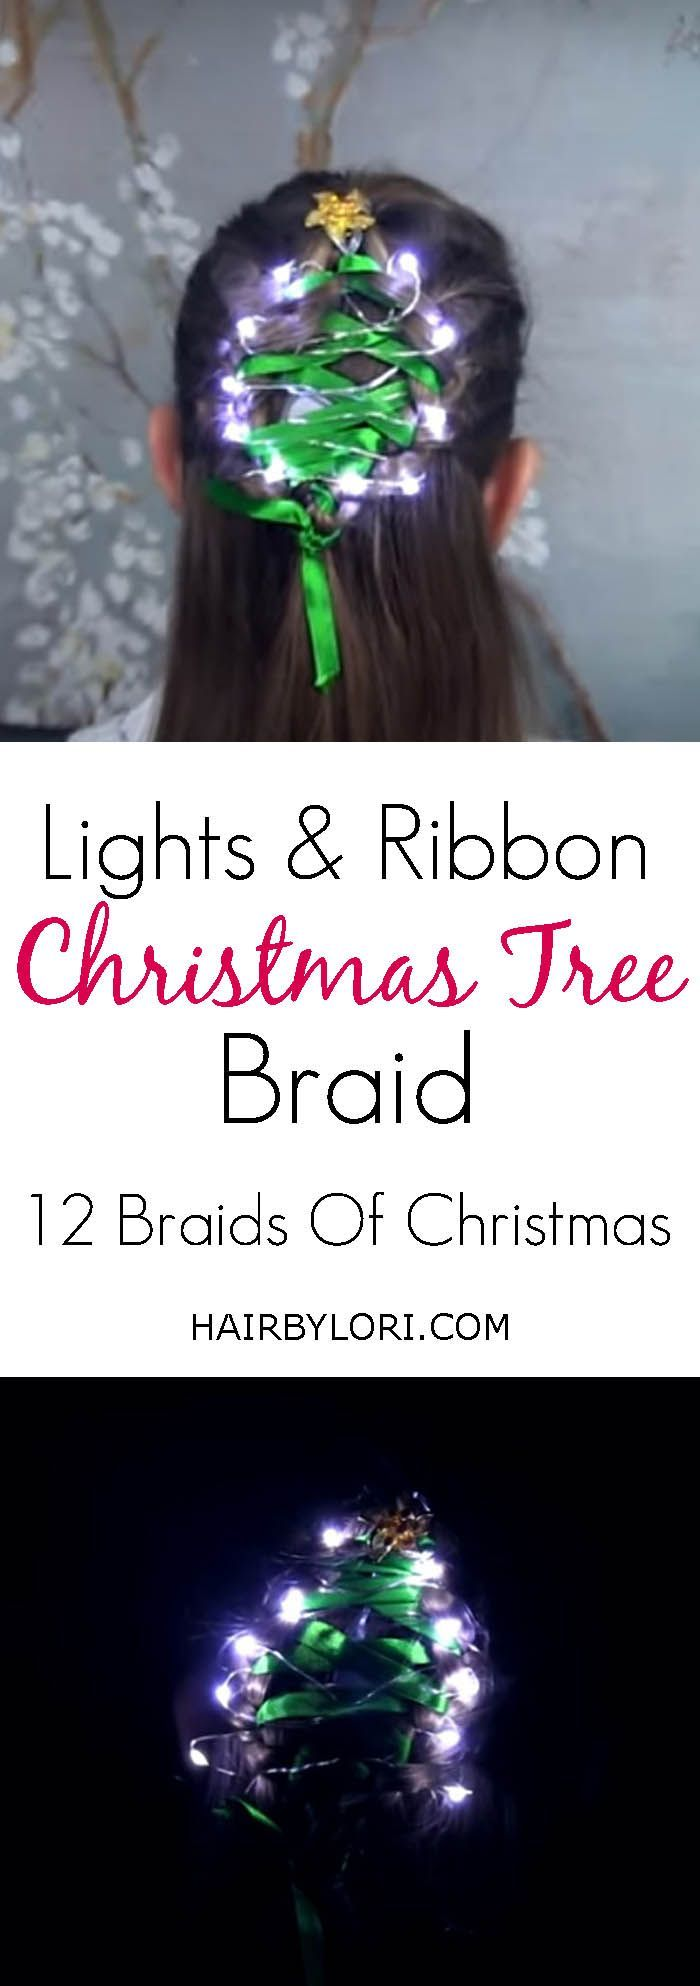 The Ribbon Christmas Tree Braid